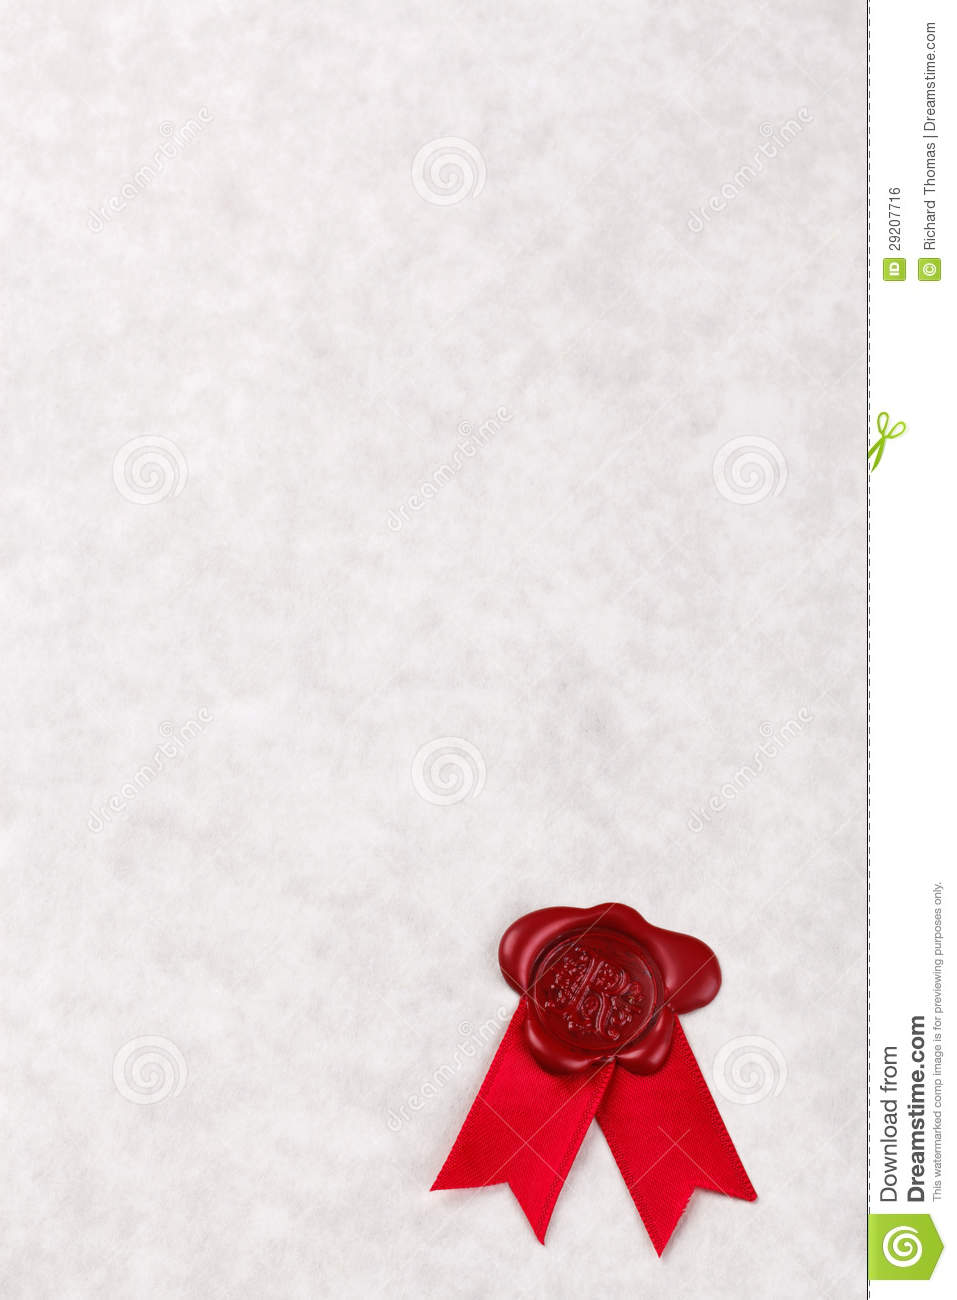 blank parchment paper with red wax seal royalty free stock